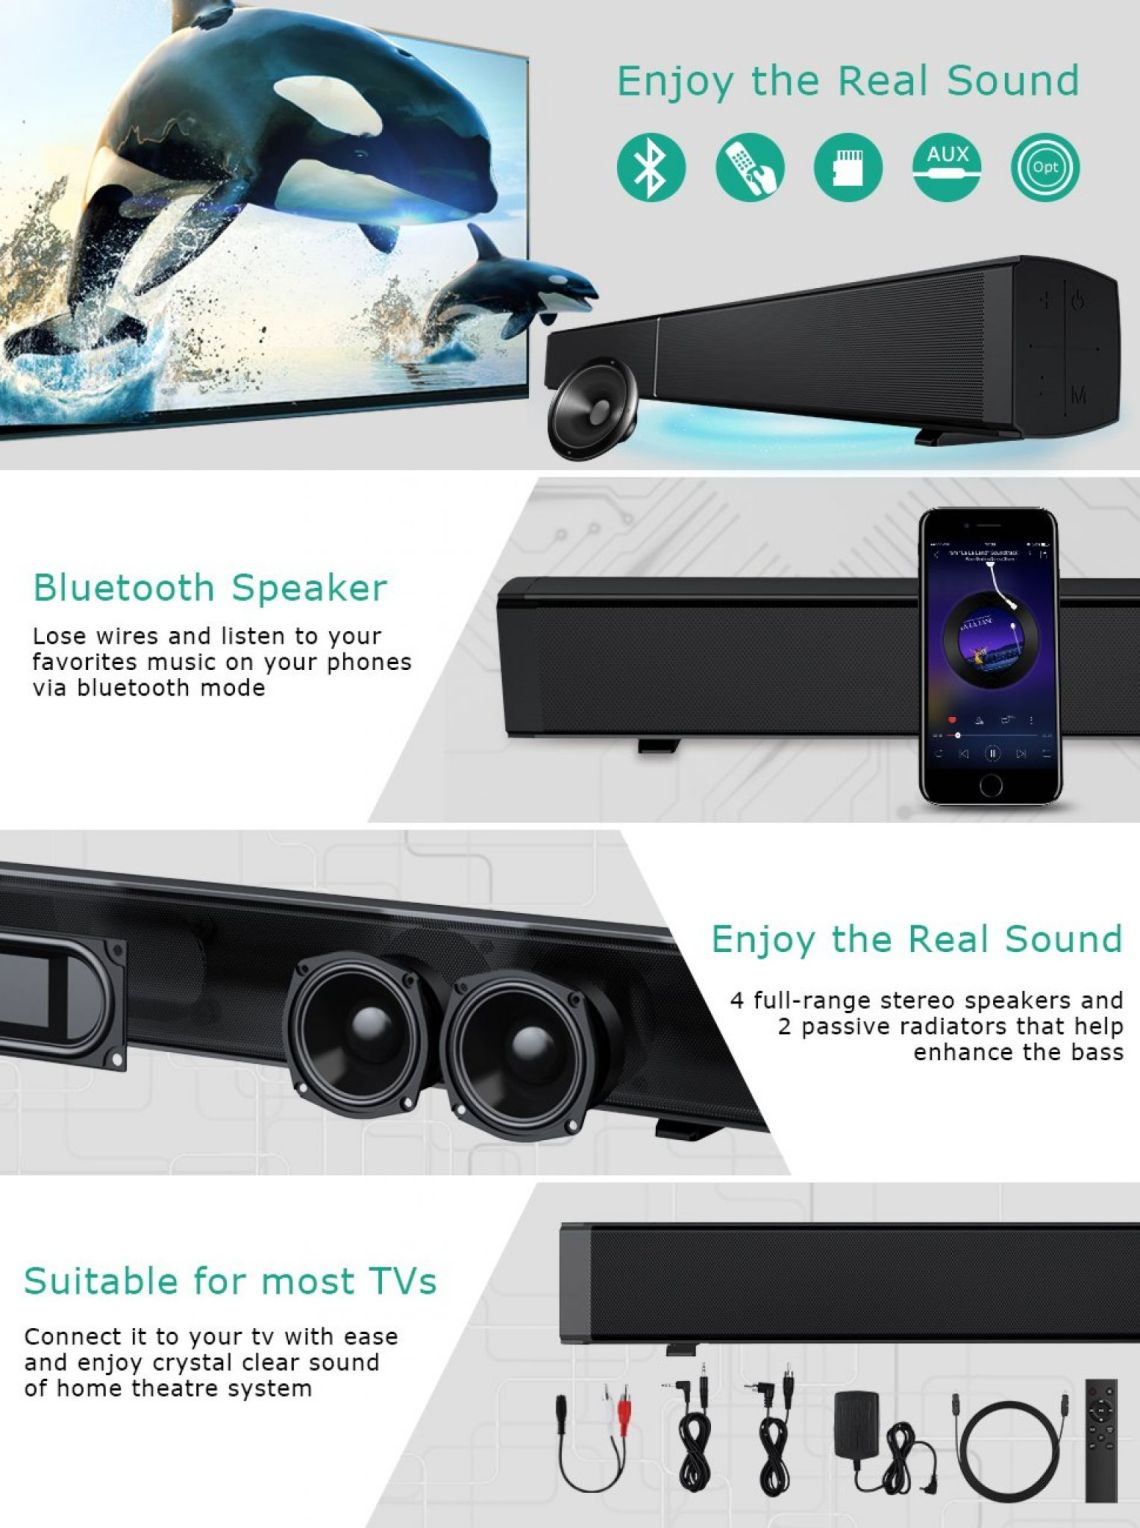 Amazon.com: Sound Bar for TV, Home Theater Surround Soundbar Wired and Wireless Bluetooth Audio Speaker, Wall Mountable, with Optical Cable Remote Control USB Input: Home Audio & Theater